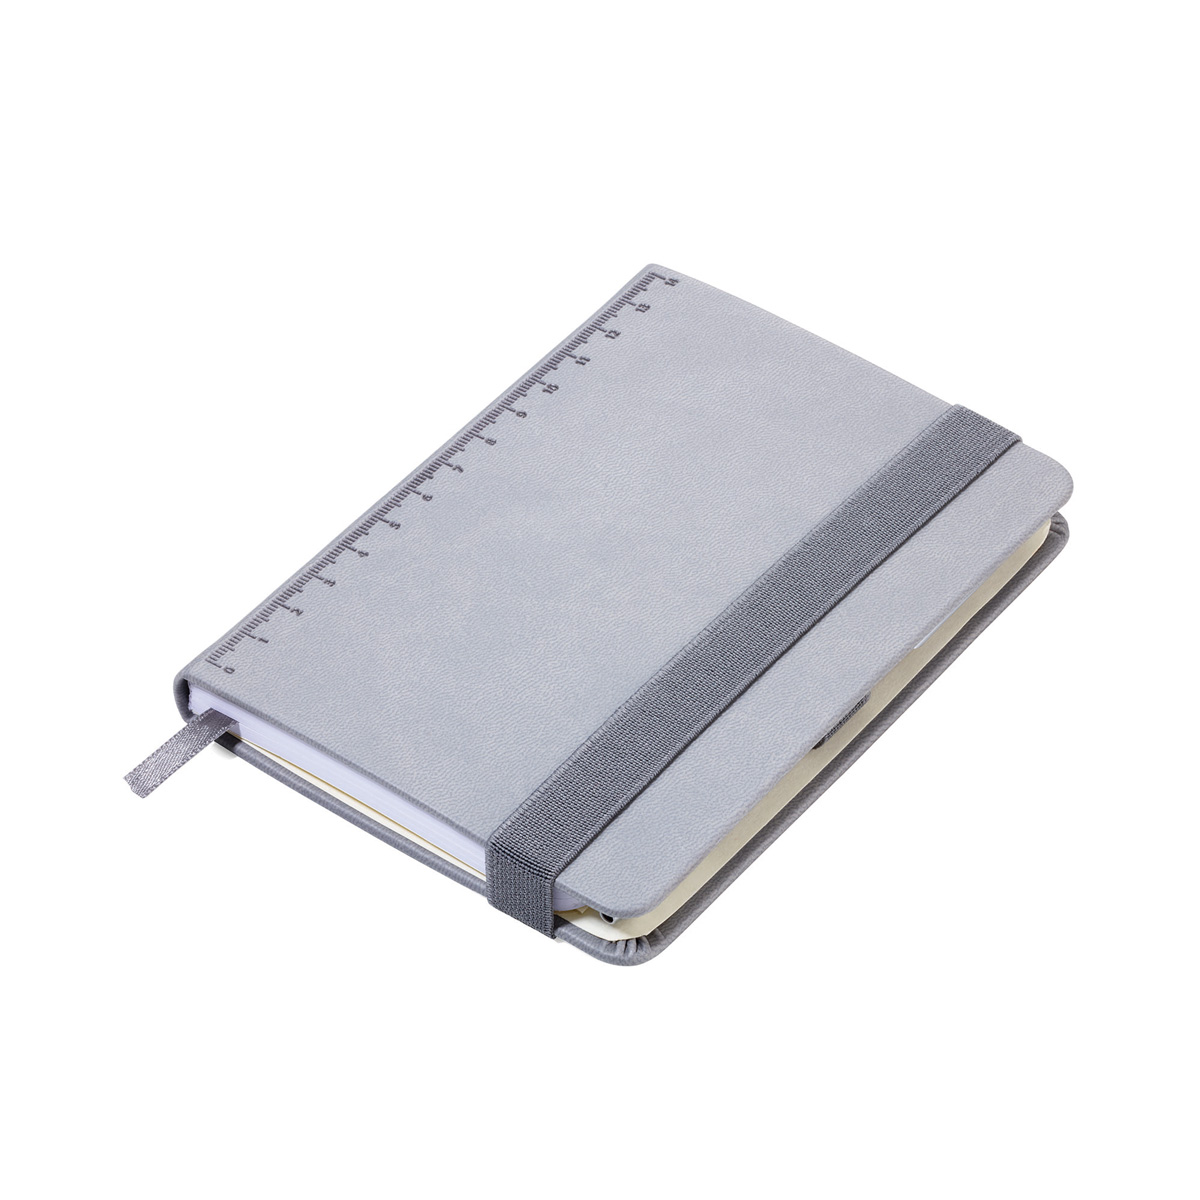 Troika A6 Notebook with Slim Construction Pen Titanium